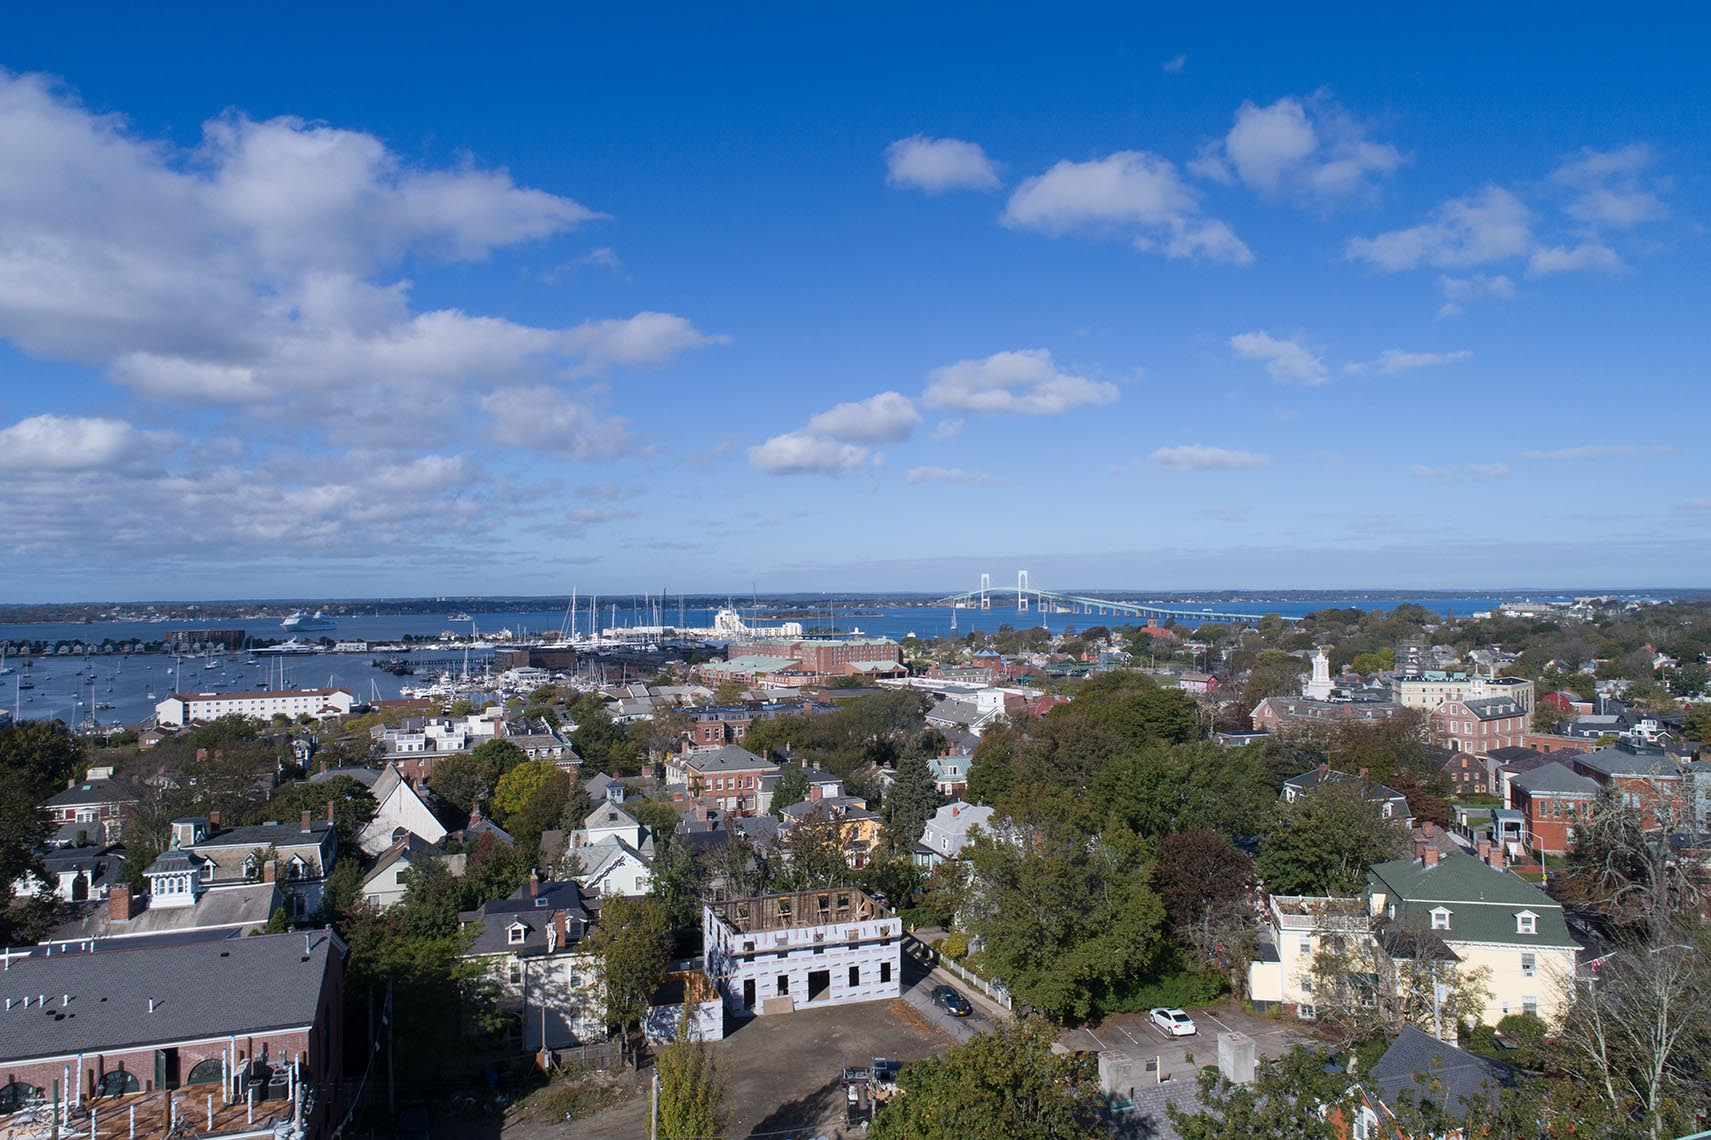 Downtown Newport RI with the Harbor and Jamestown Bridge